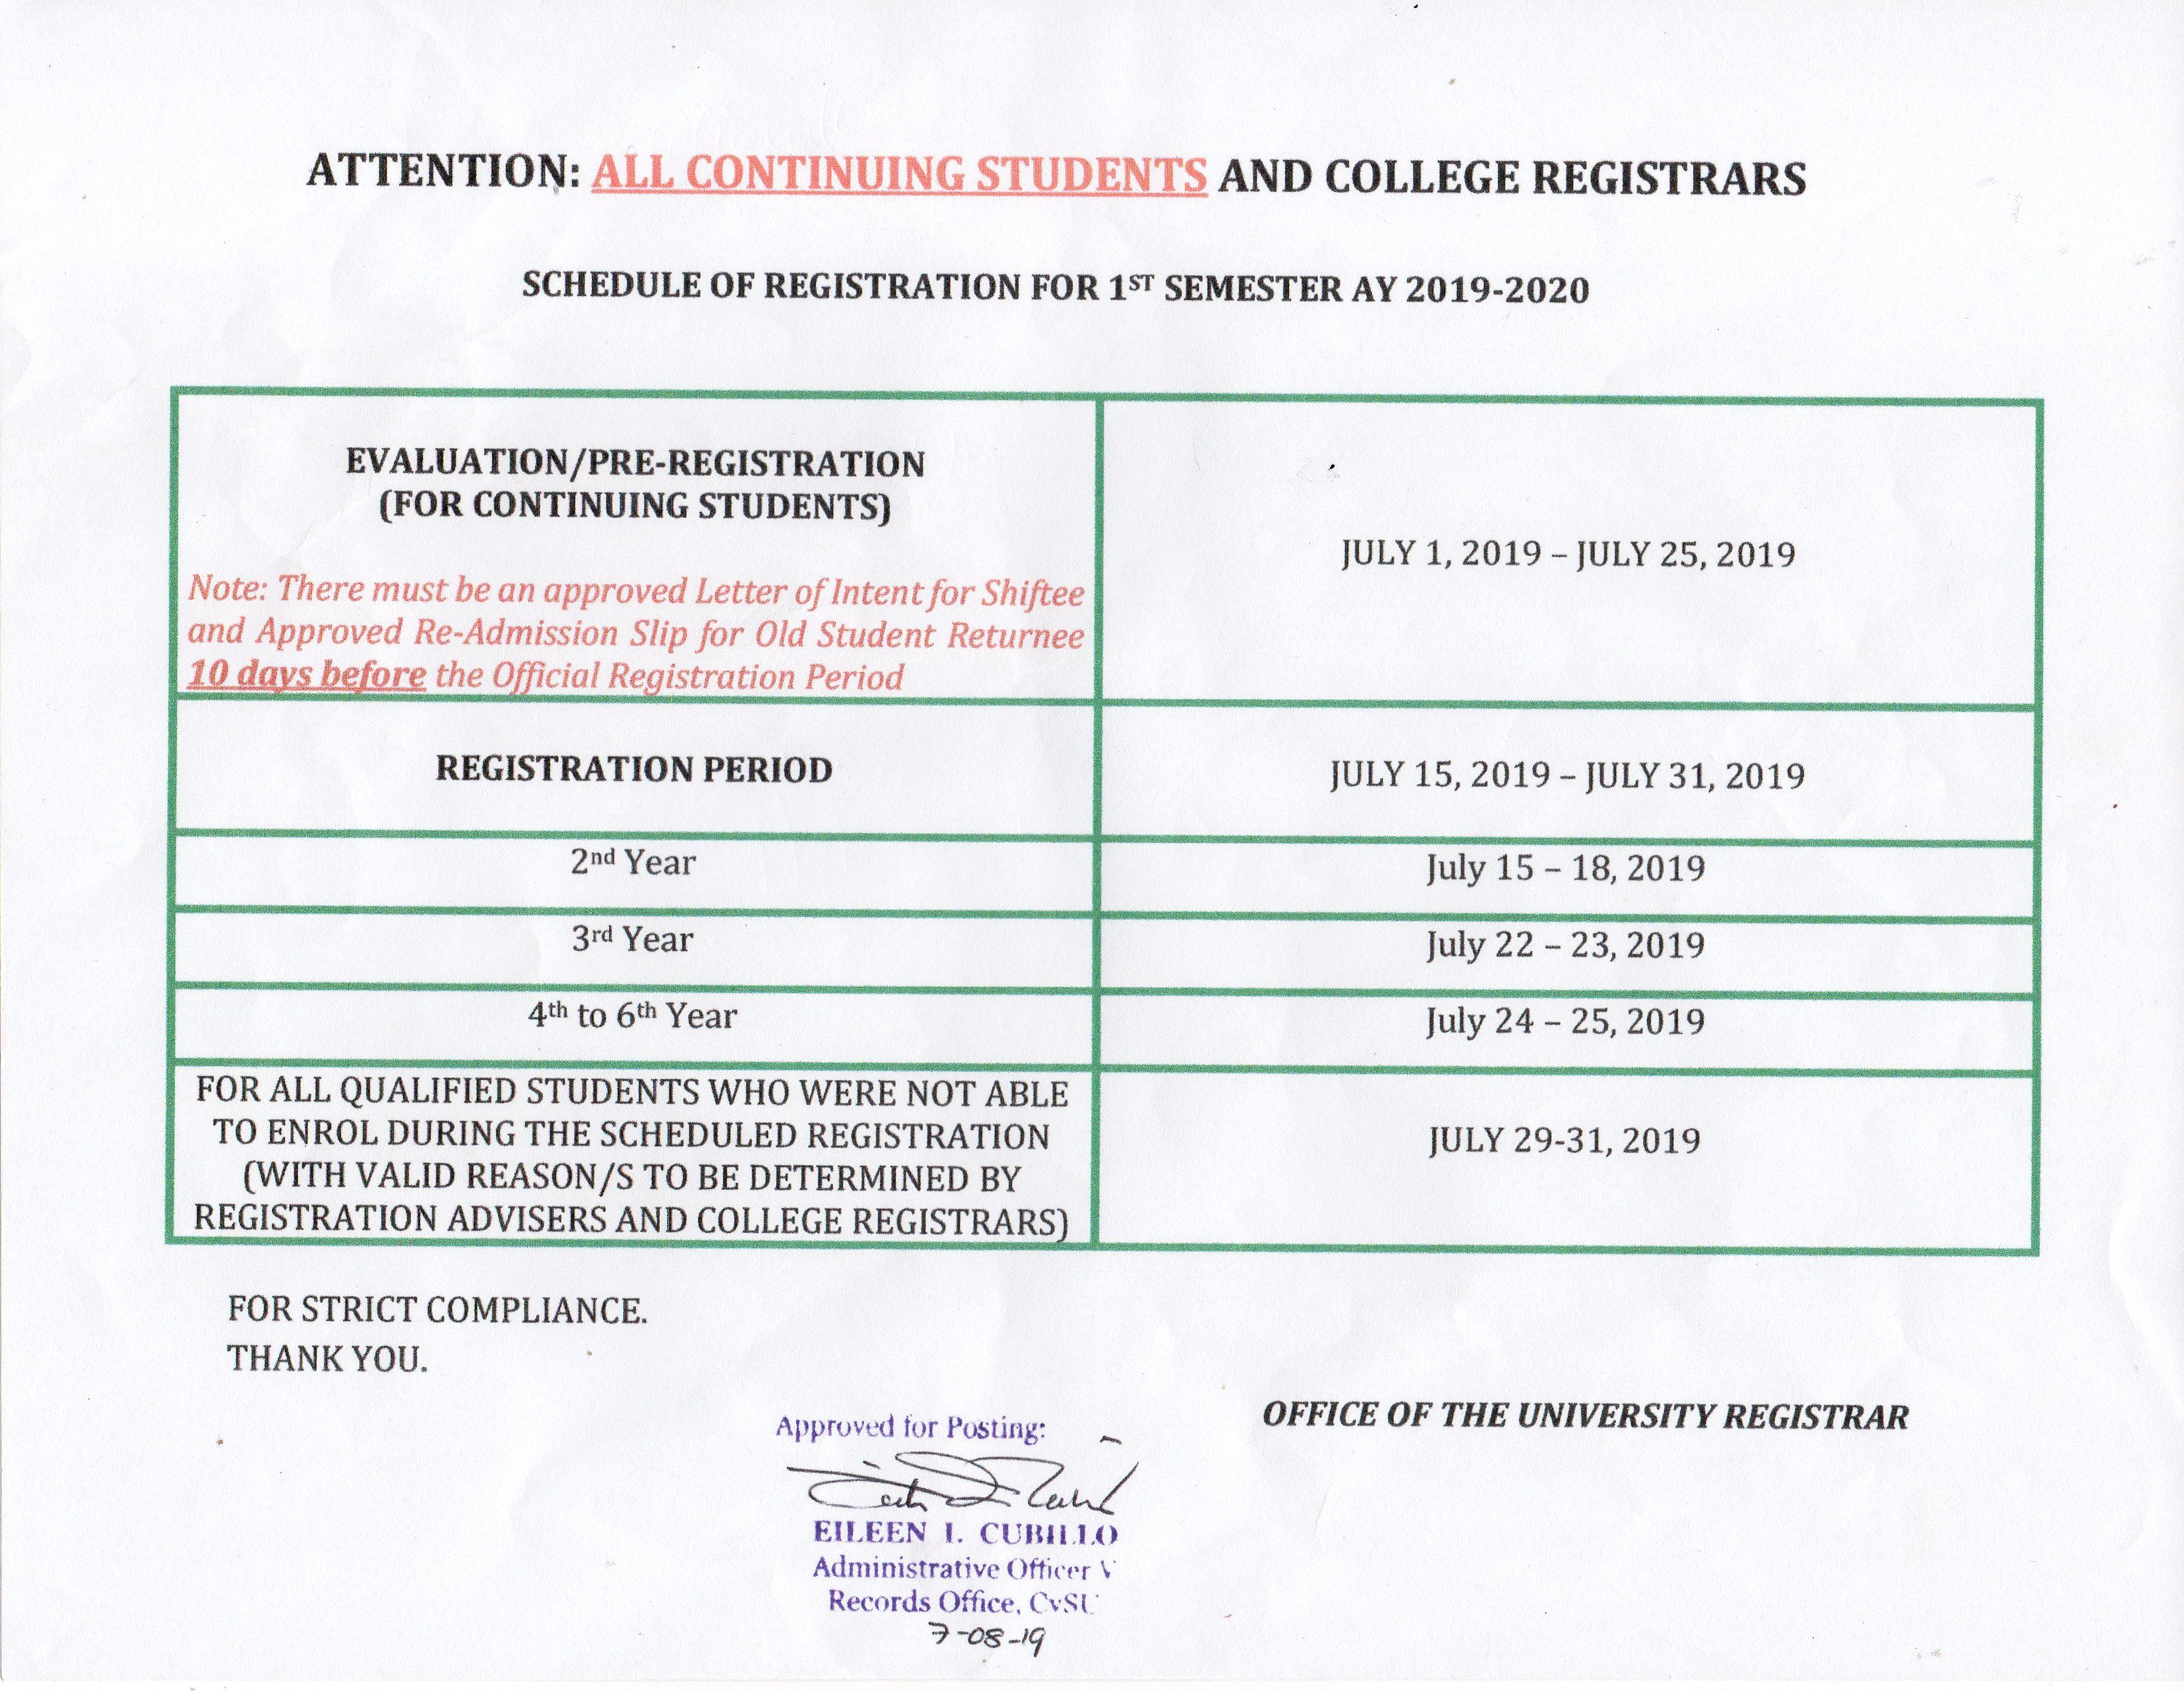 Schedule of Regsitration for 1st Semester 2019-2020